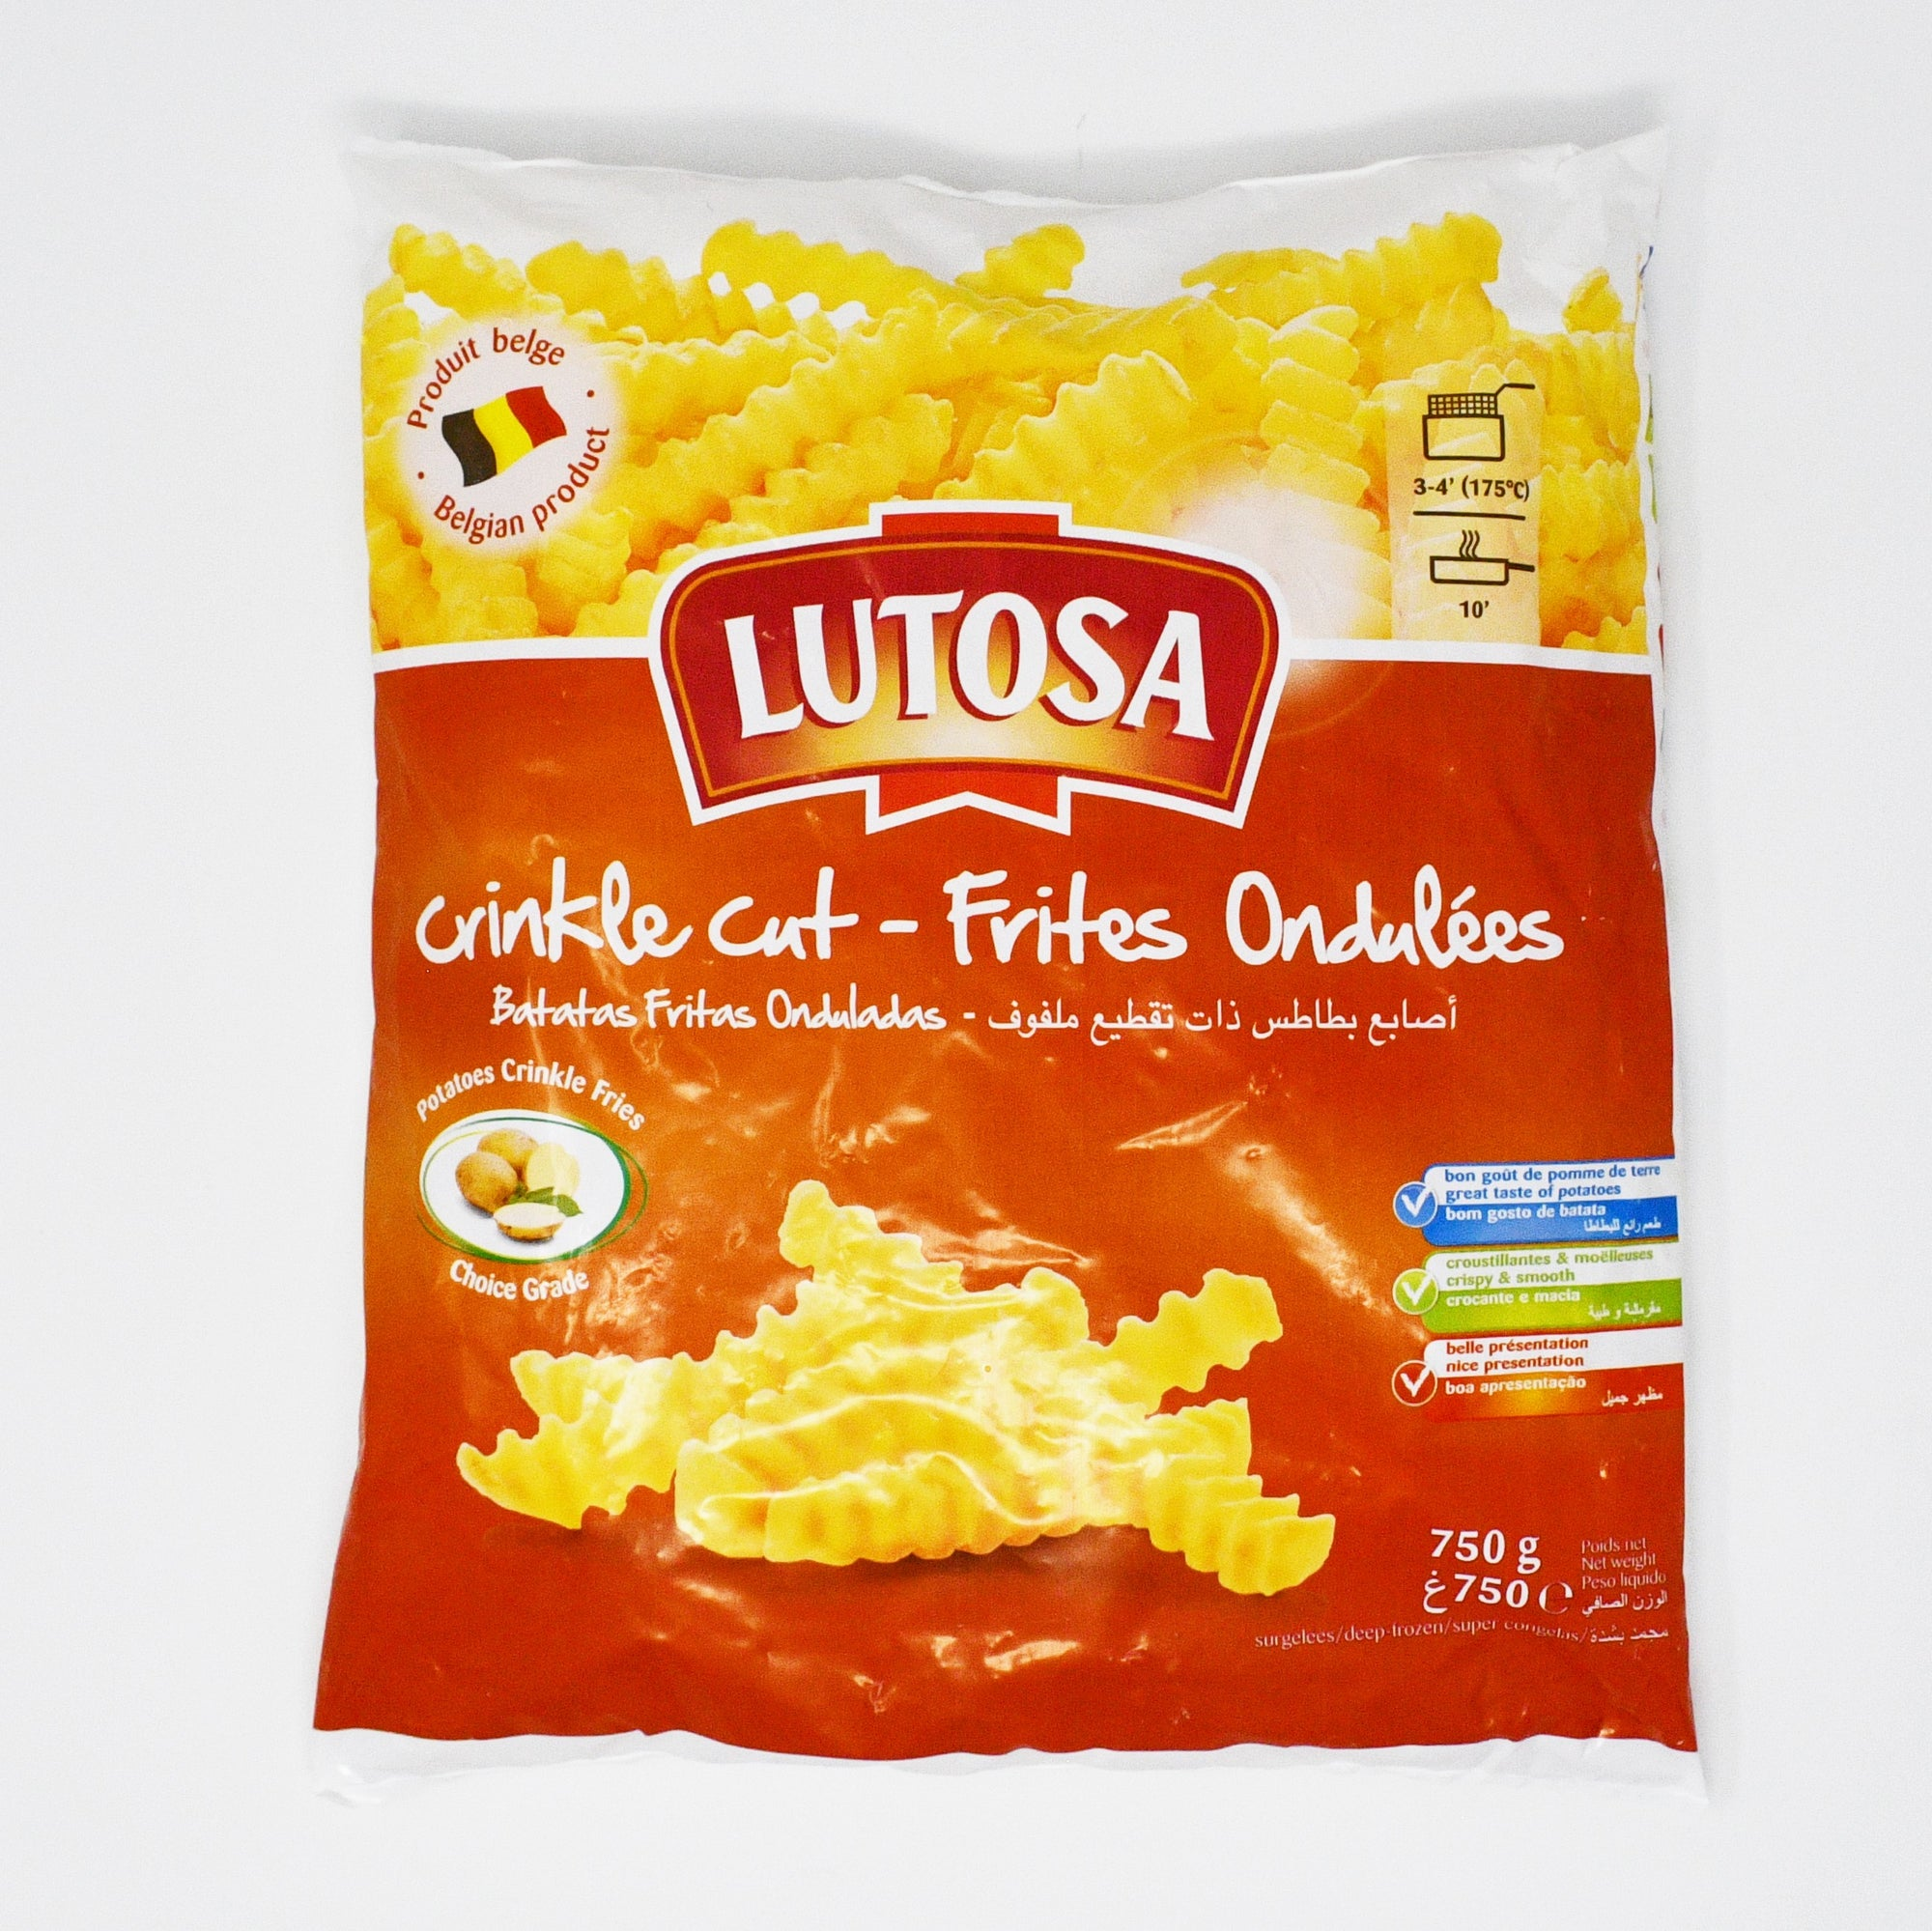 LUTOSA CRINKLE CUT FRIES (700g)